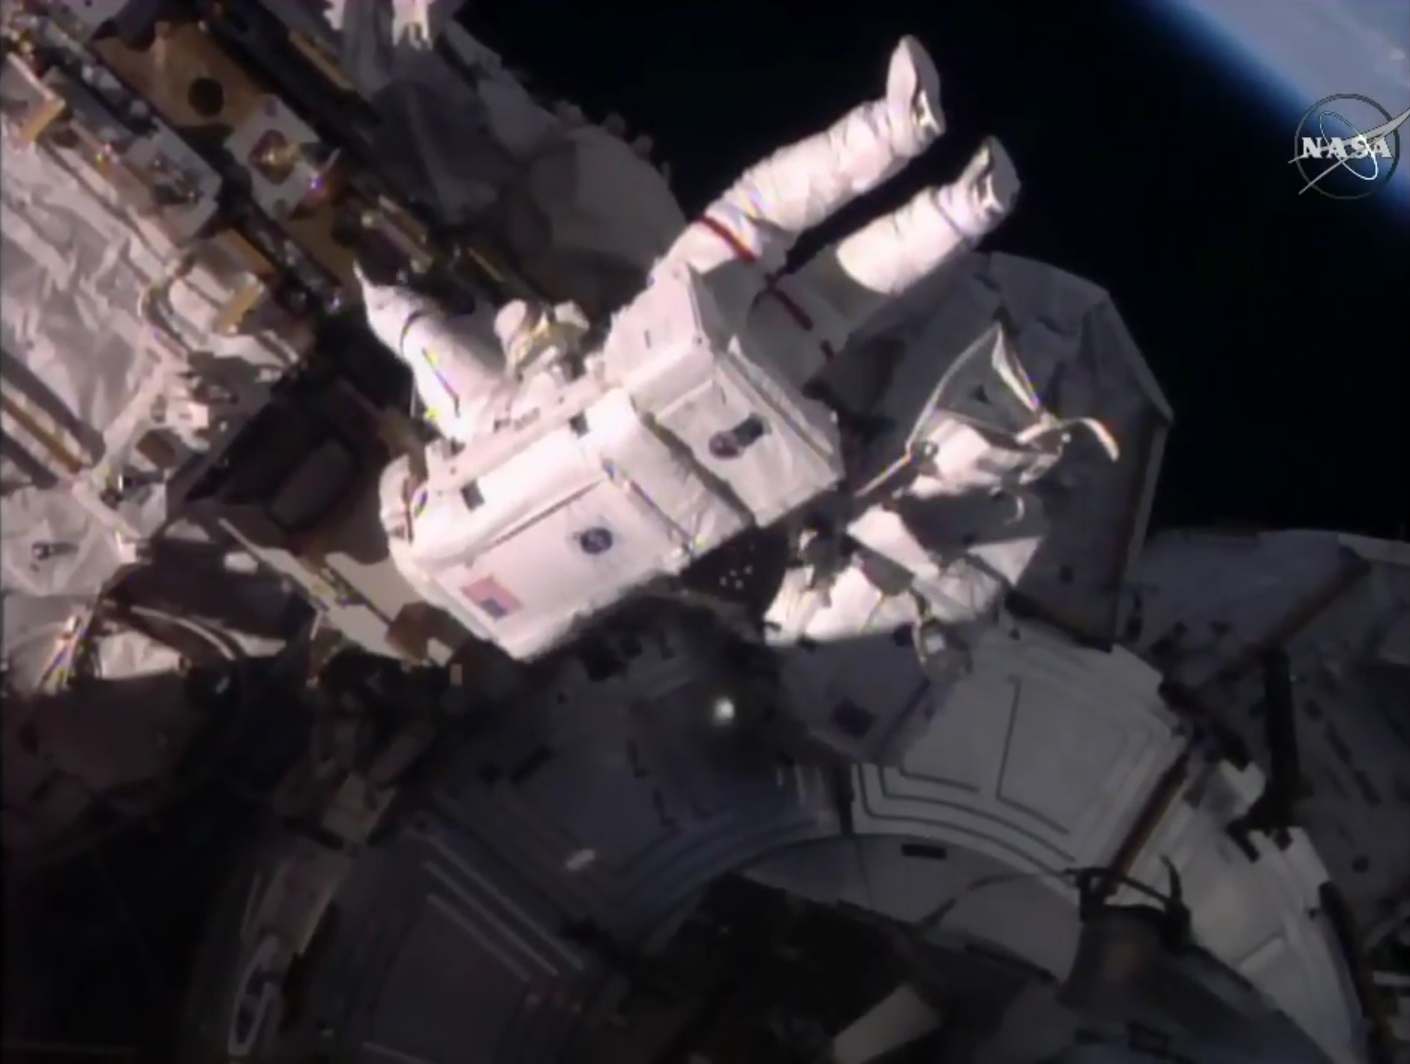 First Commercial Crew Docking Port established aboard ISS ...